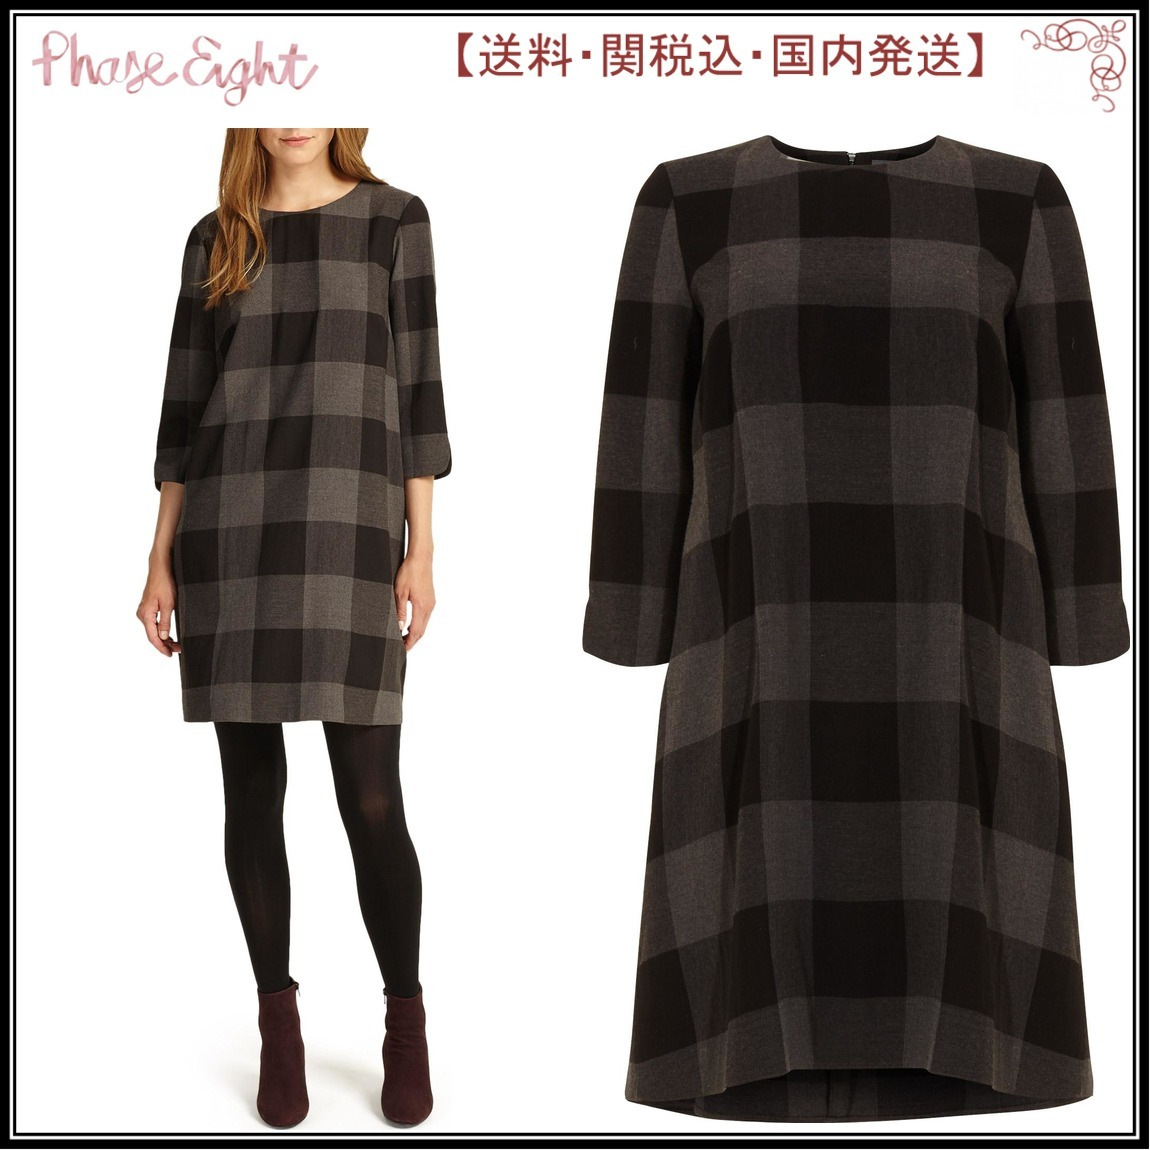 【関税込】PhaseEight ワンピース☆Check Swing Tunic Dress